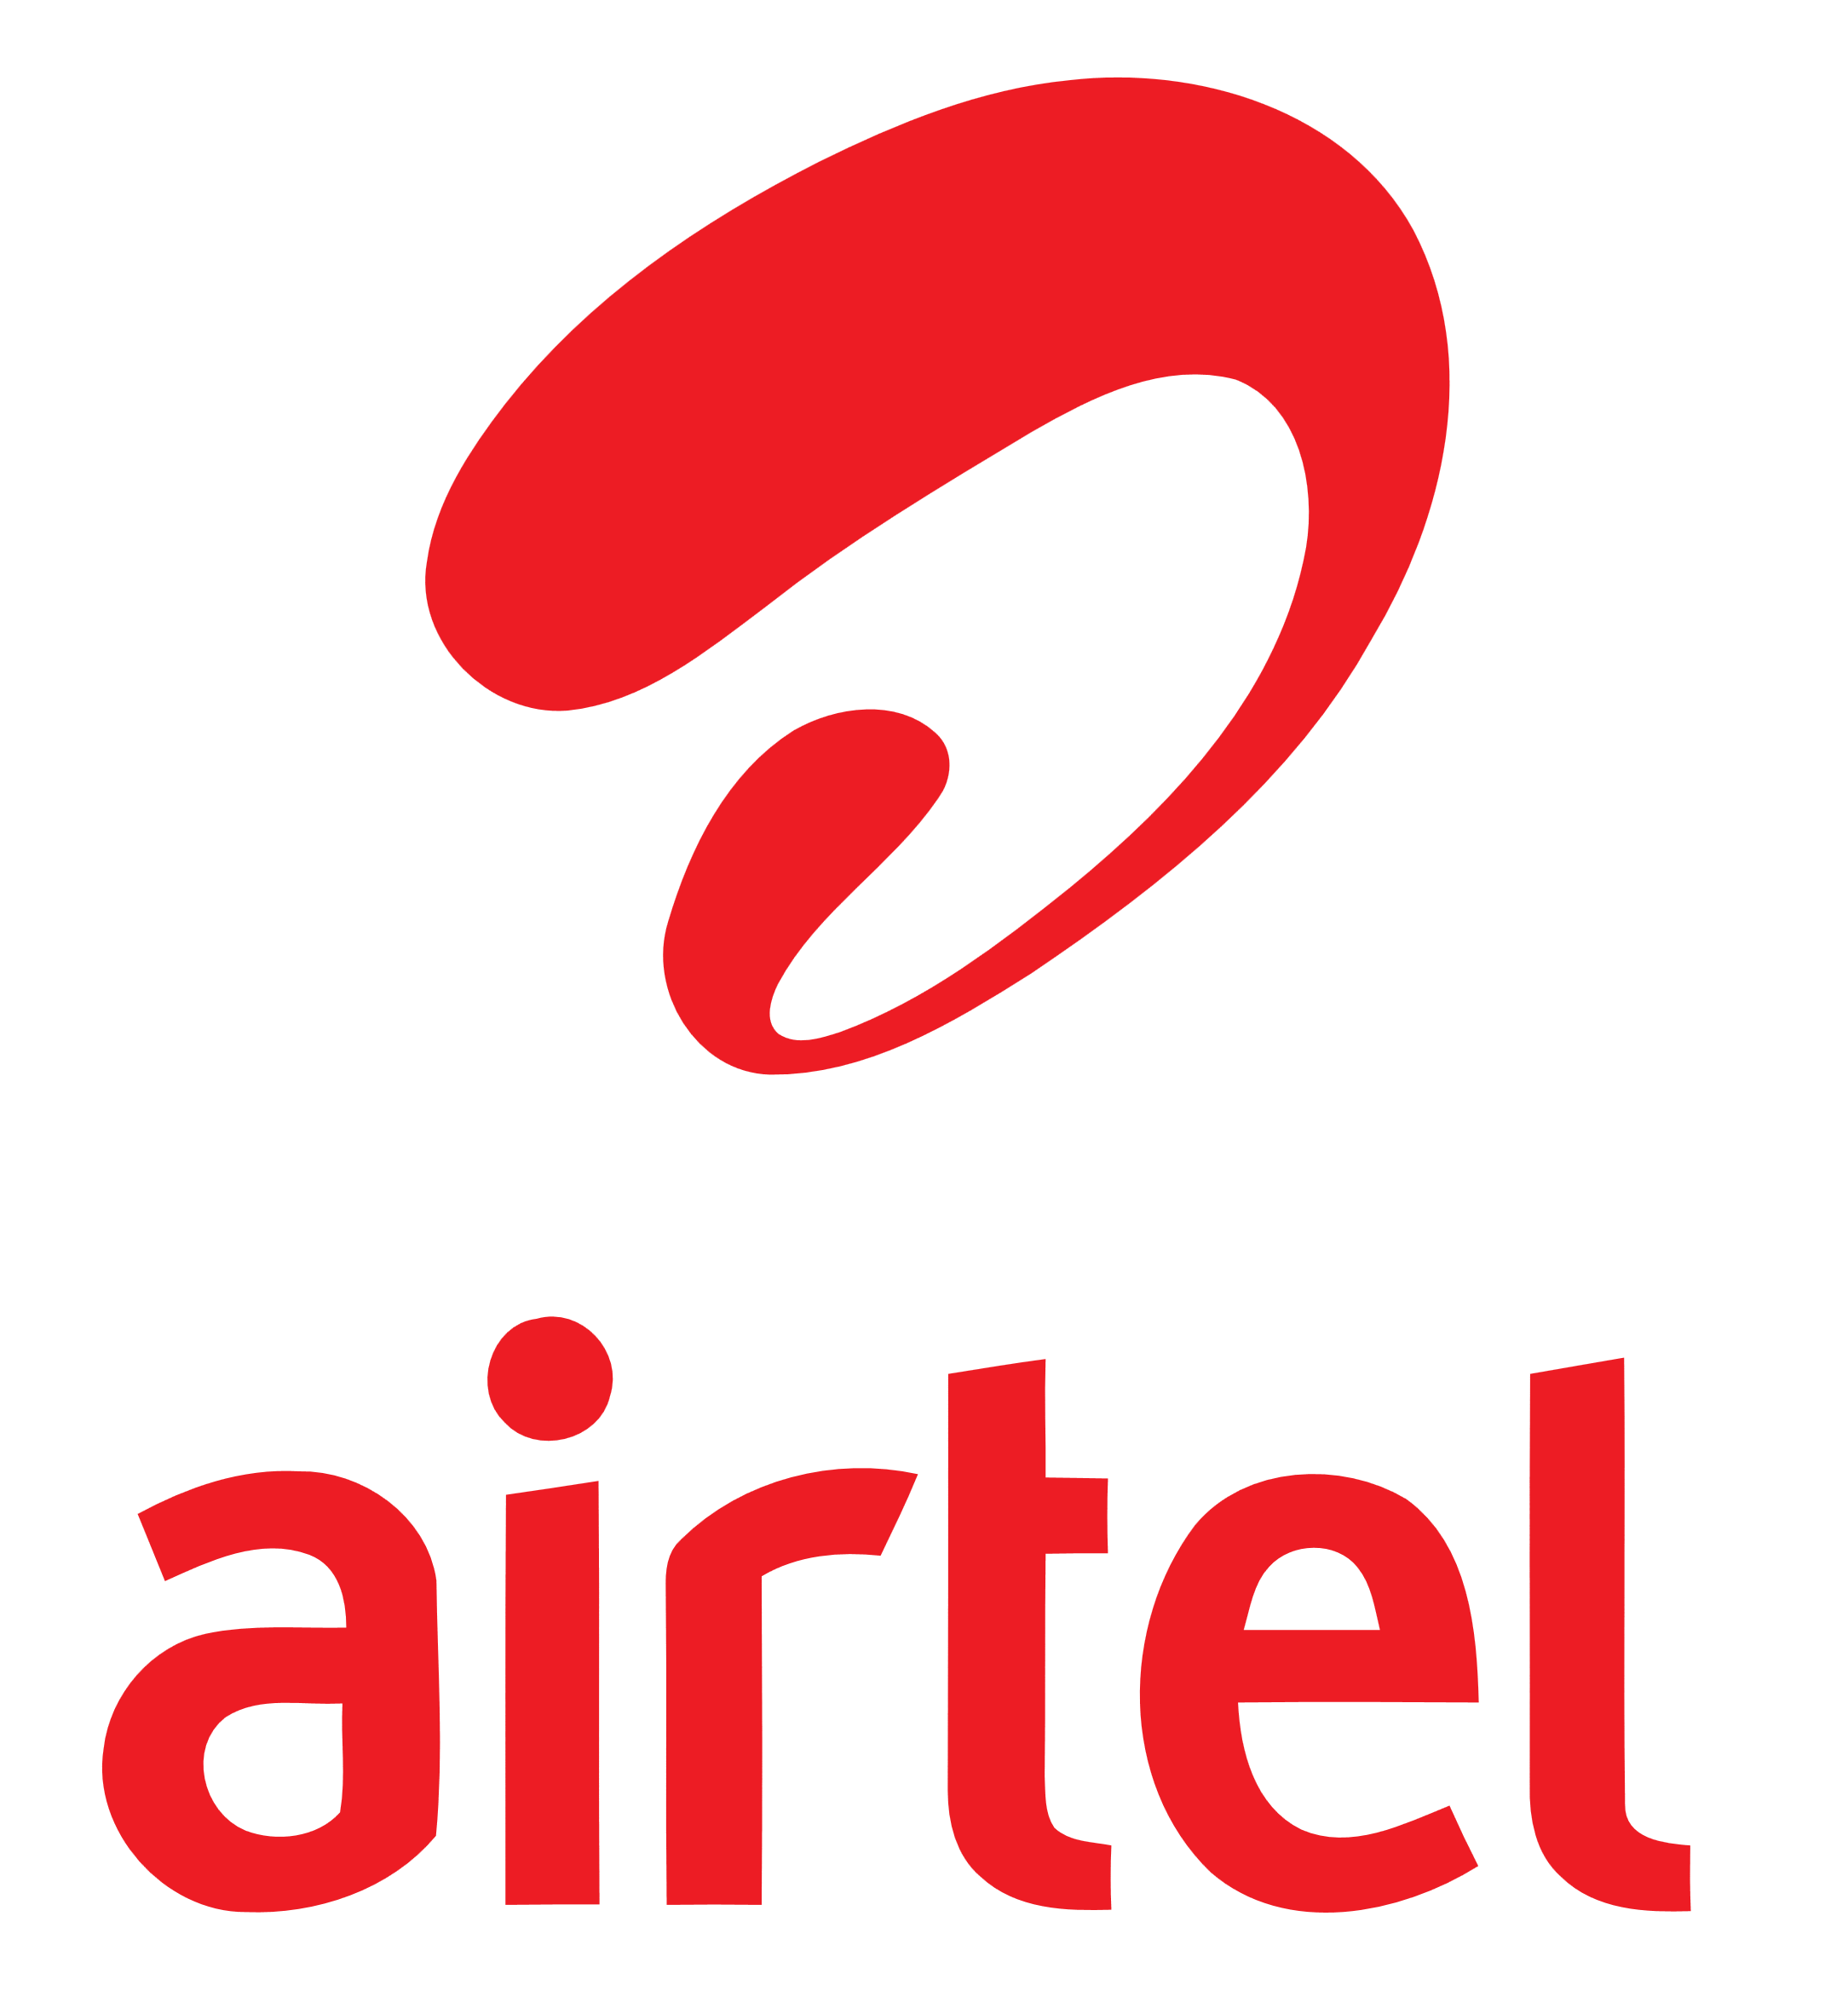 Airtel logo vector logo airtel (. Eps) download.